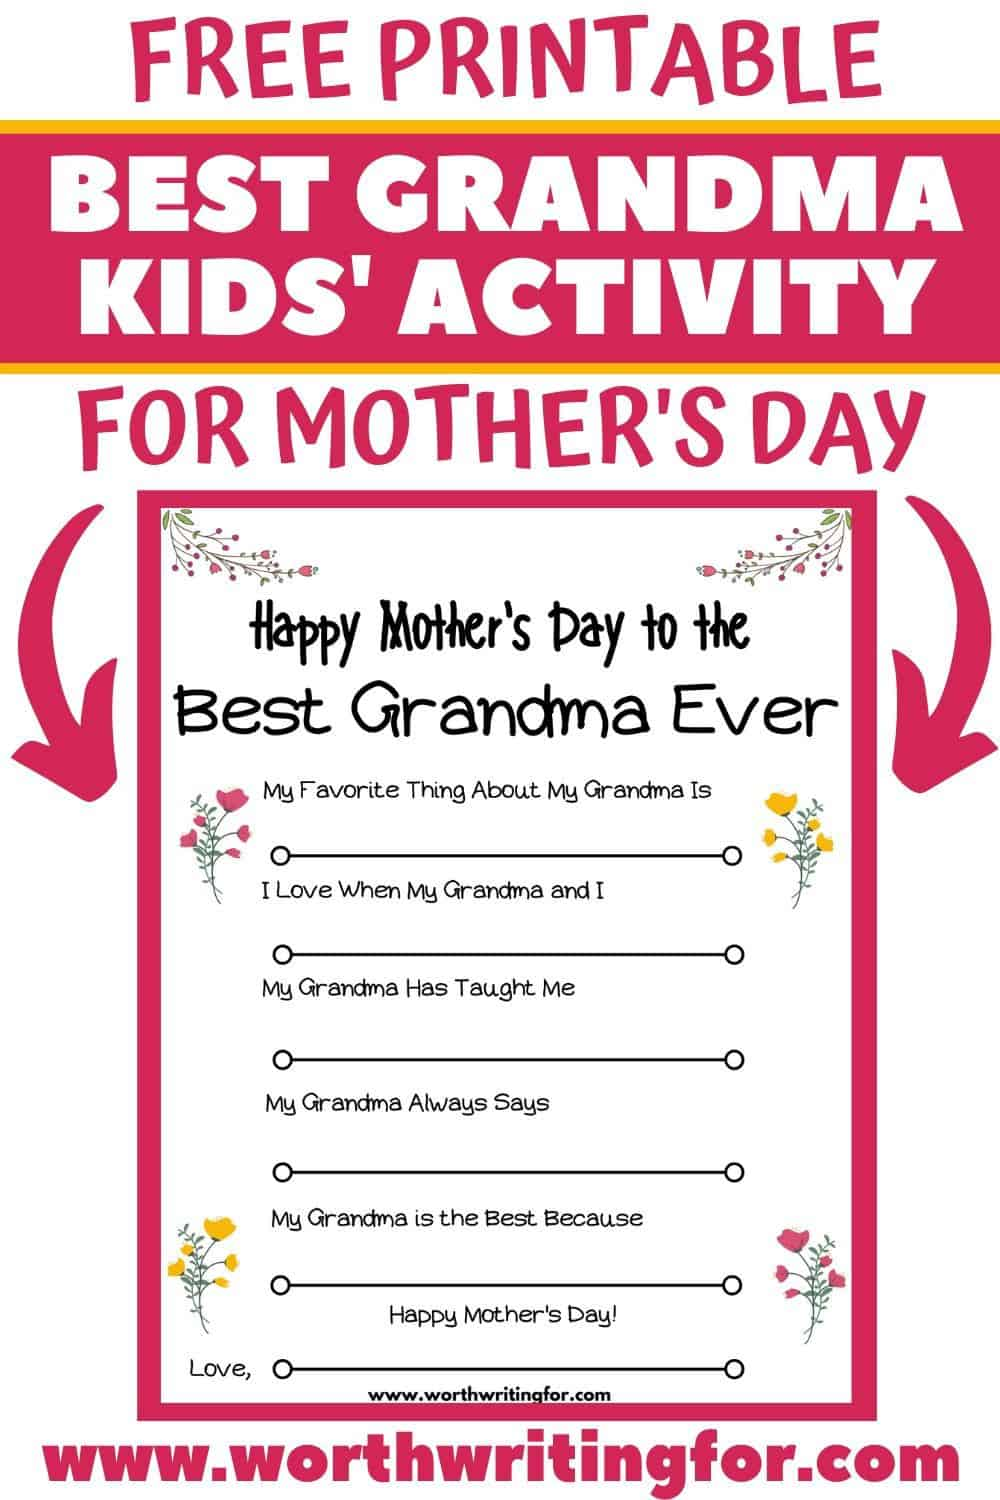 all about grandma printable for mother's day